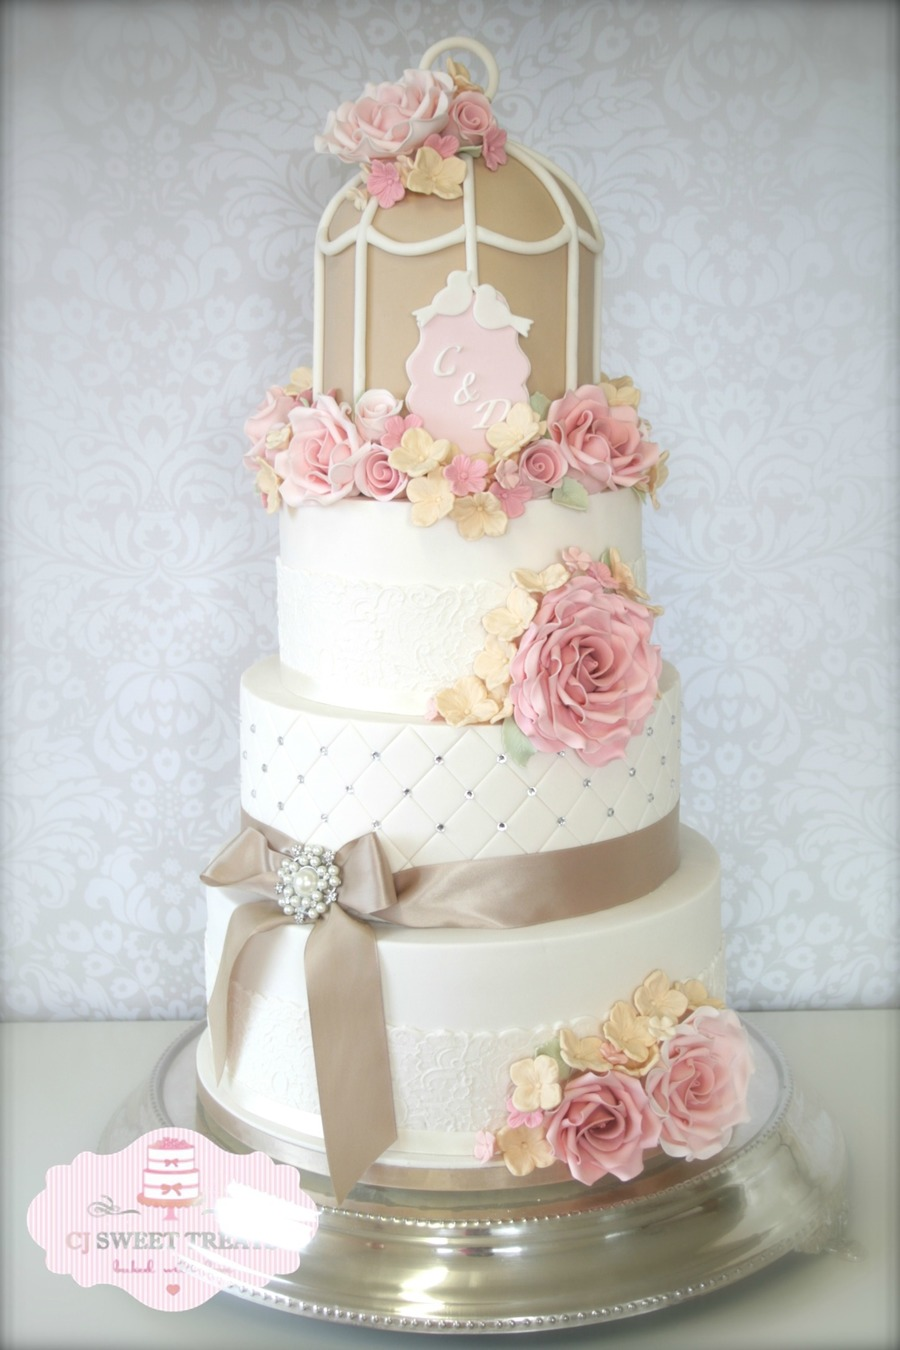 Cotton & Crumbs Inspired Birdcage Wedding Cake - CakeCentral.com